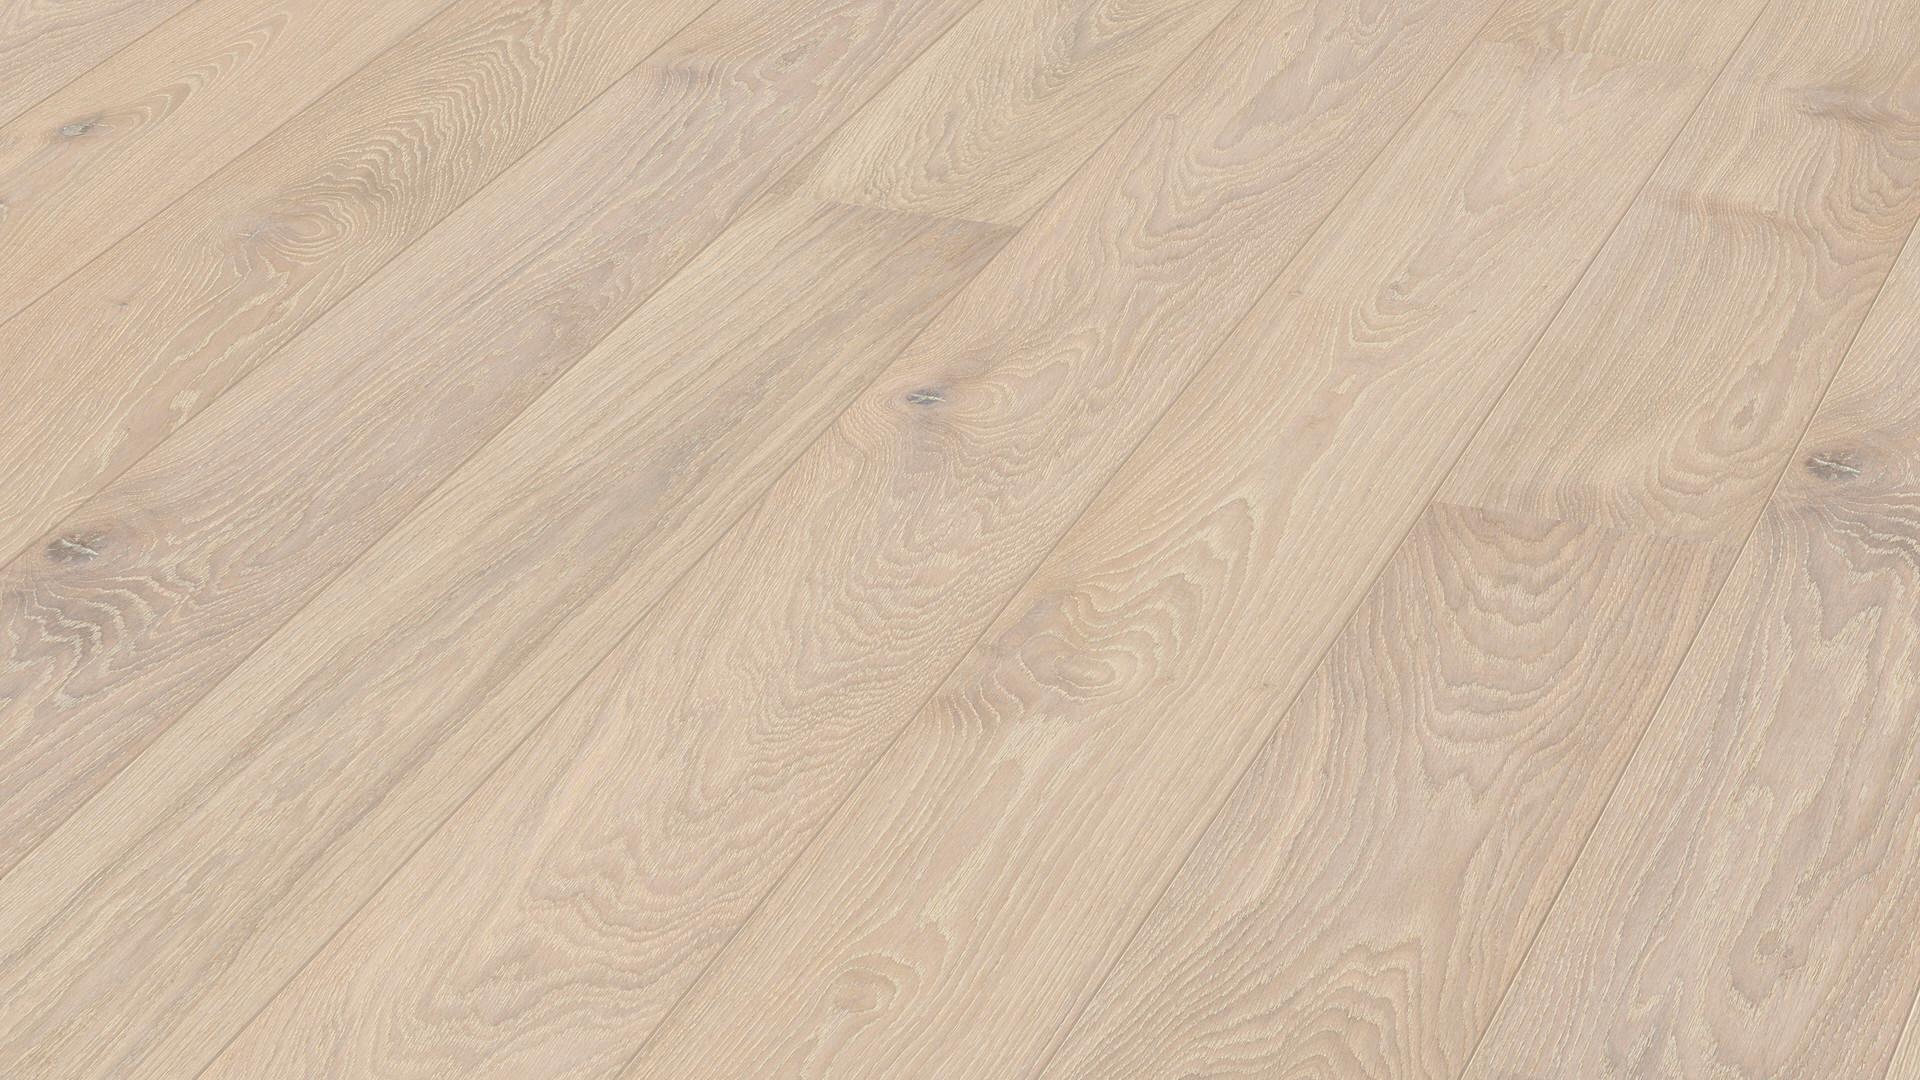 Parquet flooring MeisterParquet. longlife PD 400 Limed off-white oak lively 8541